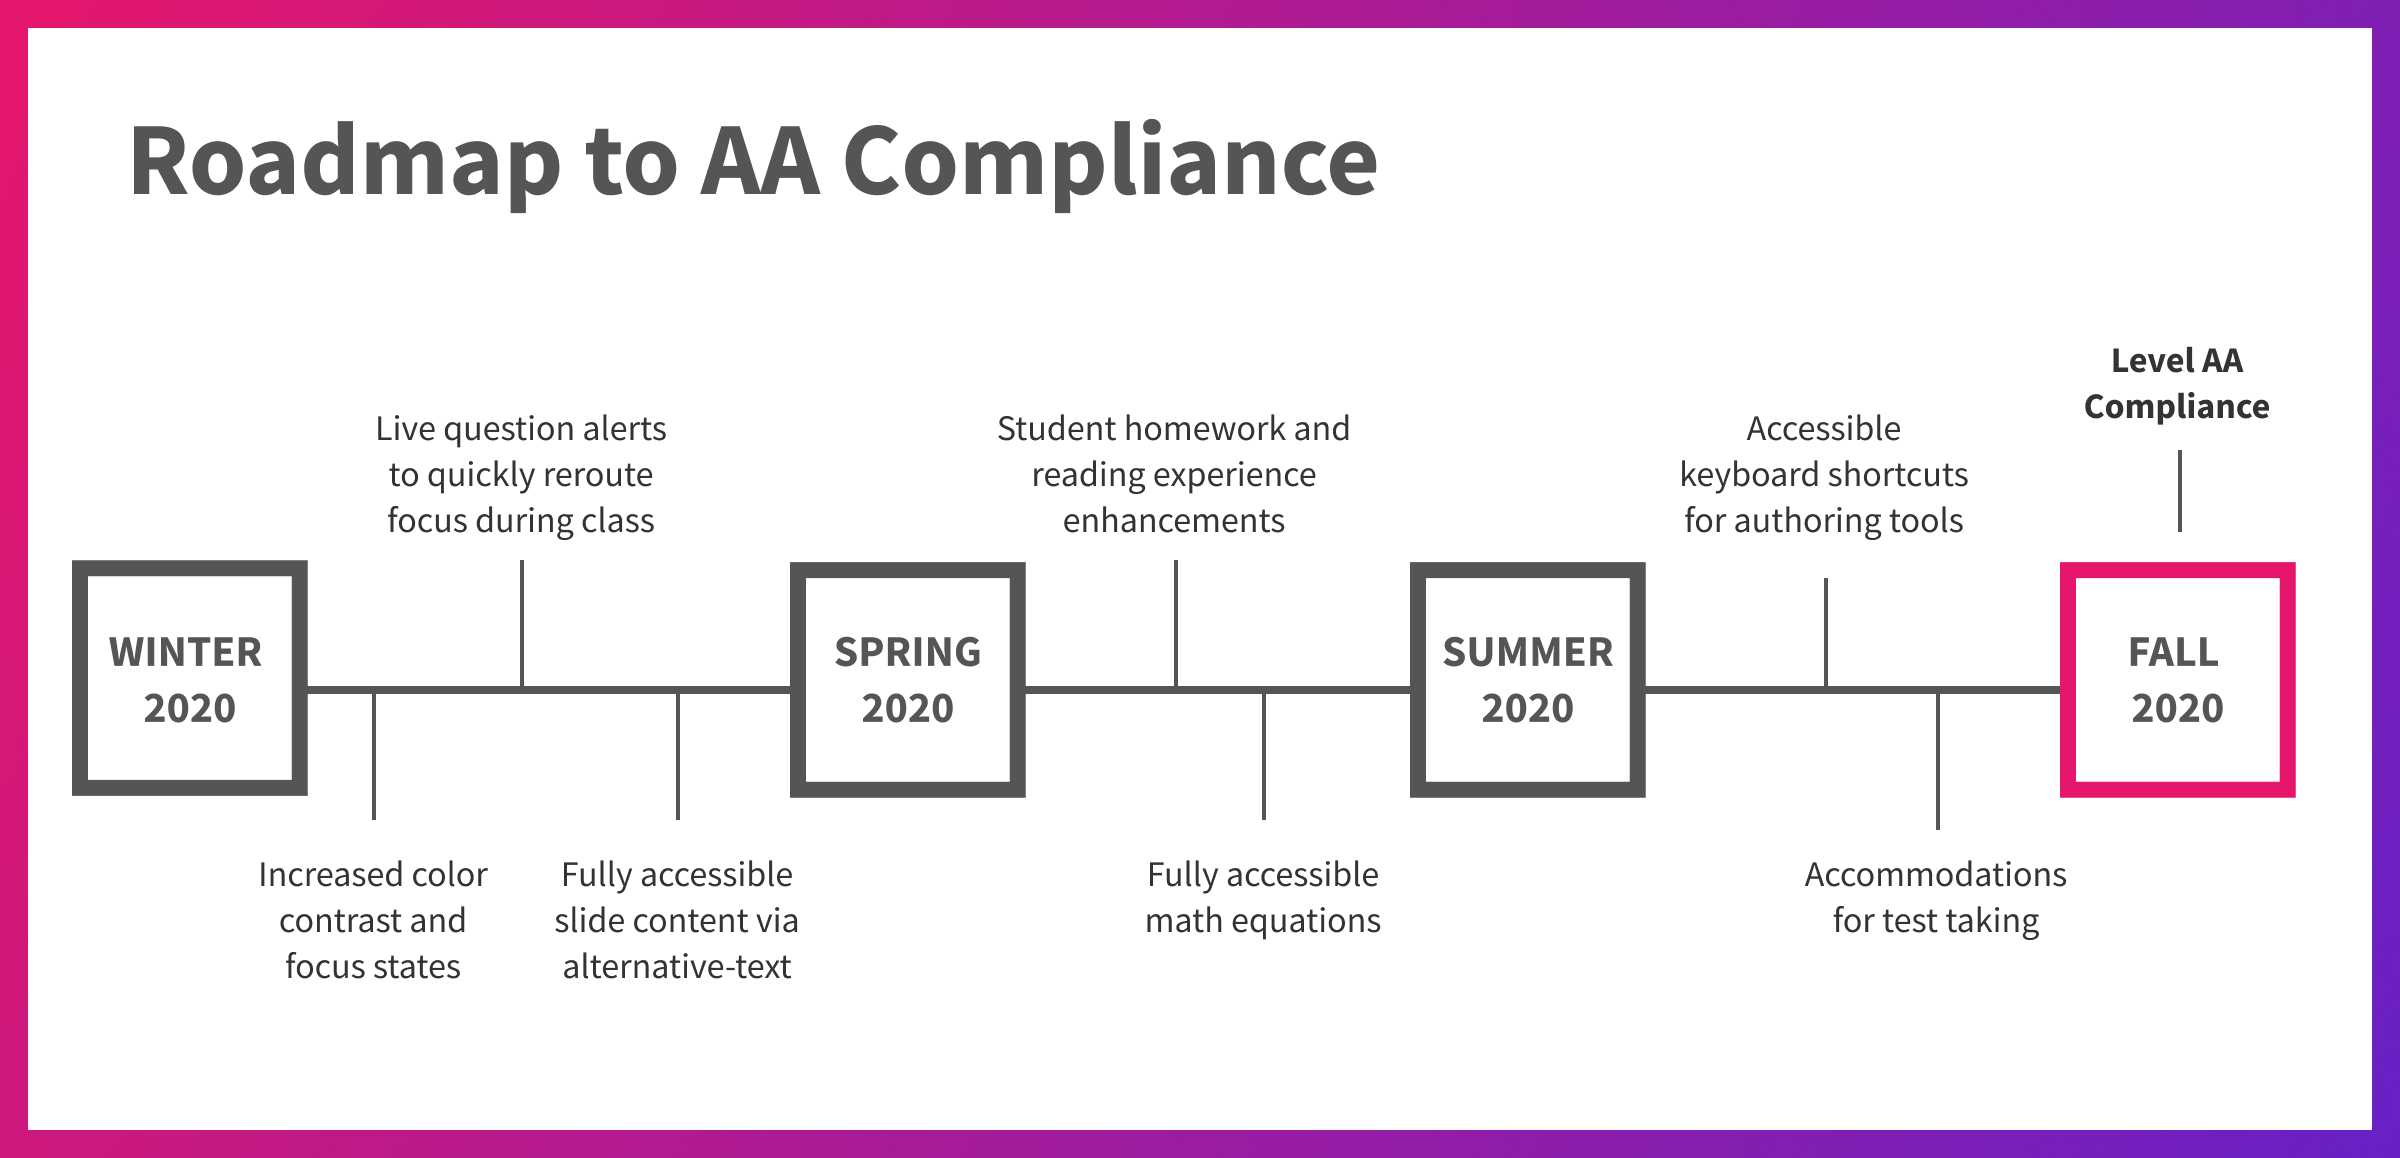 Road map of Top Hat's plan to reach Level AA compliance by Fall 2020